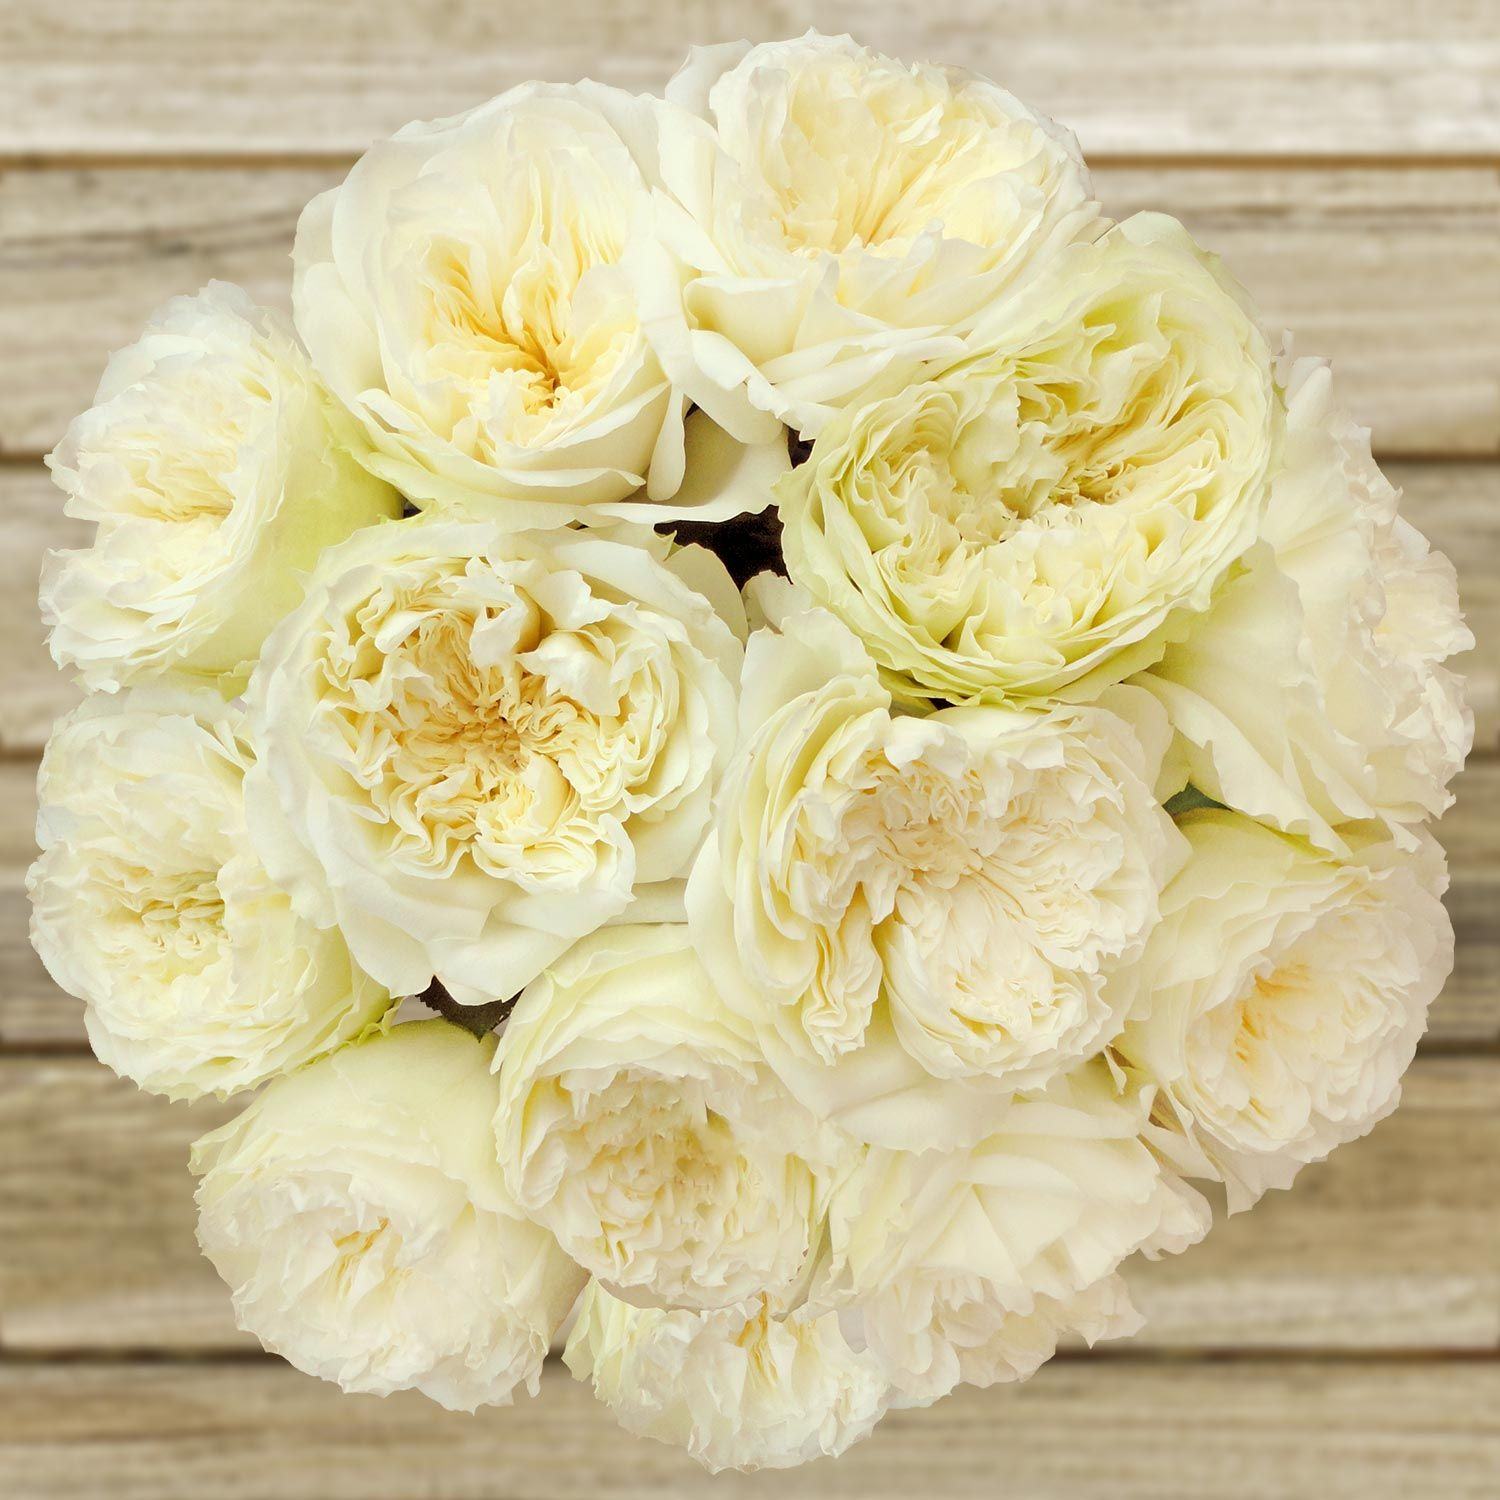 Hannah Gardens On Twitter Bulk Flowers Online Wholesale Roses Ivory Flowers